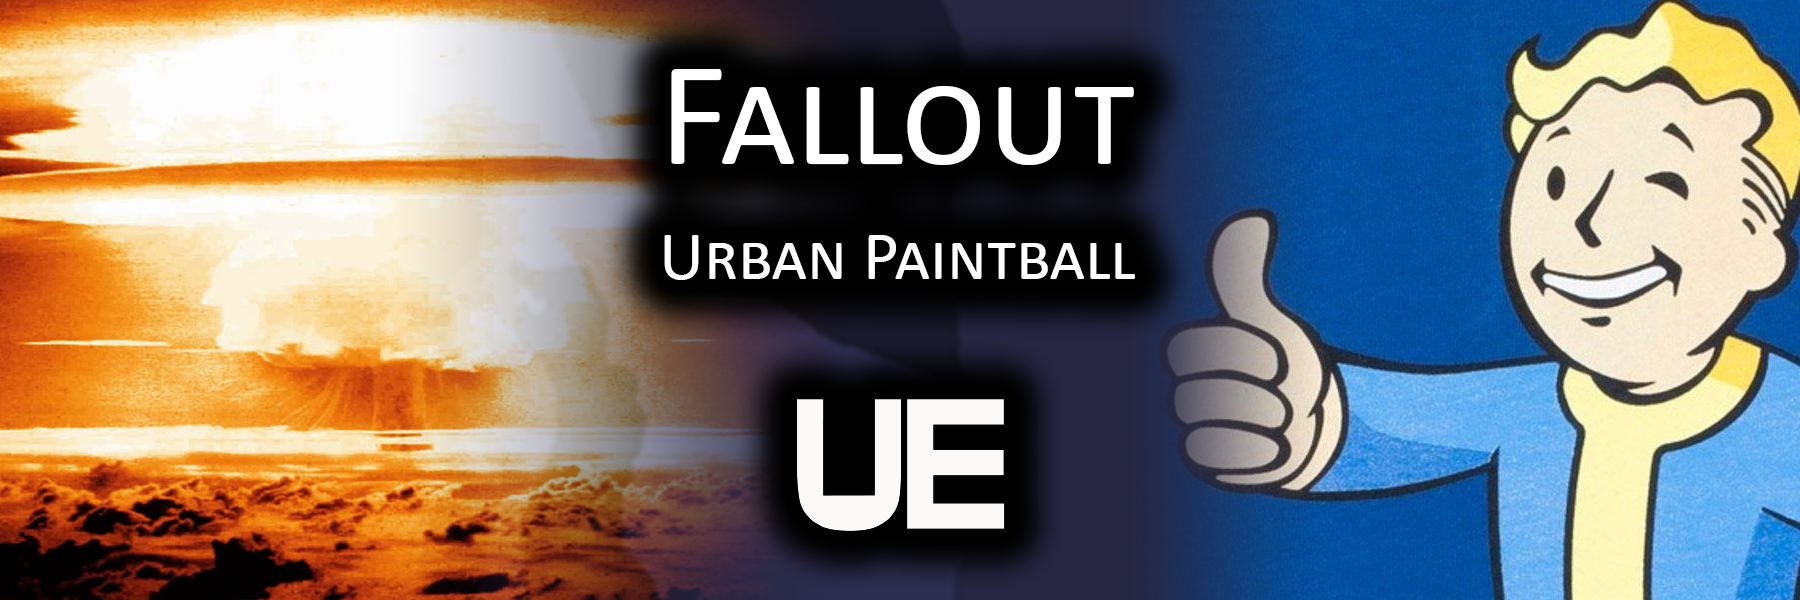 Fallout | Urban paintball